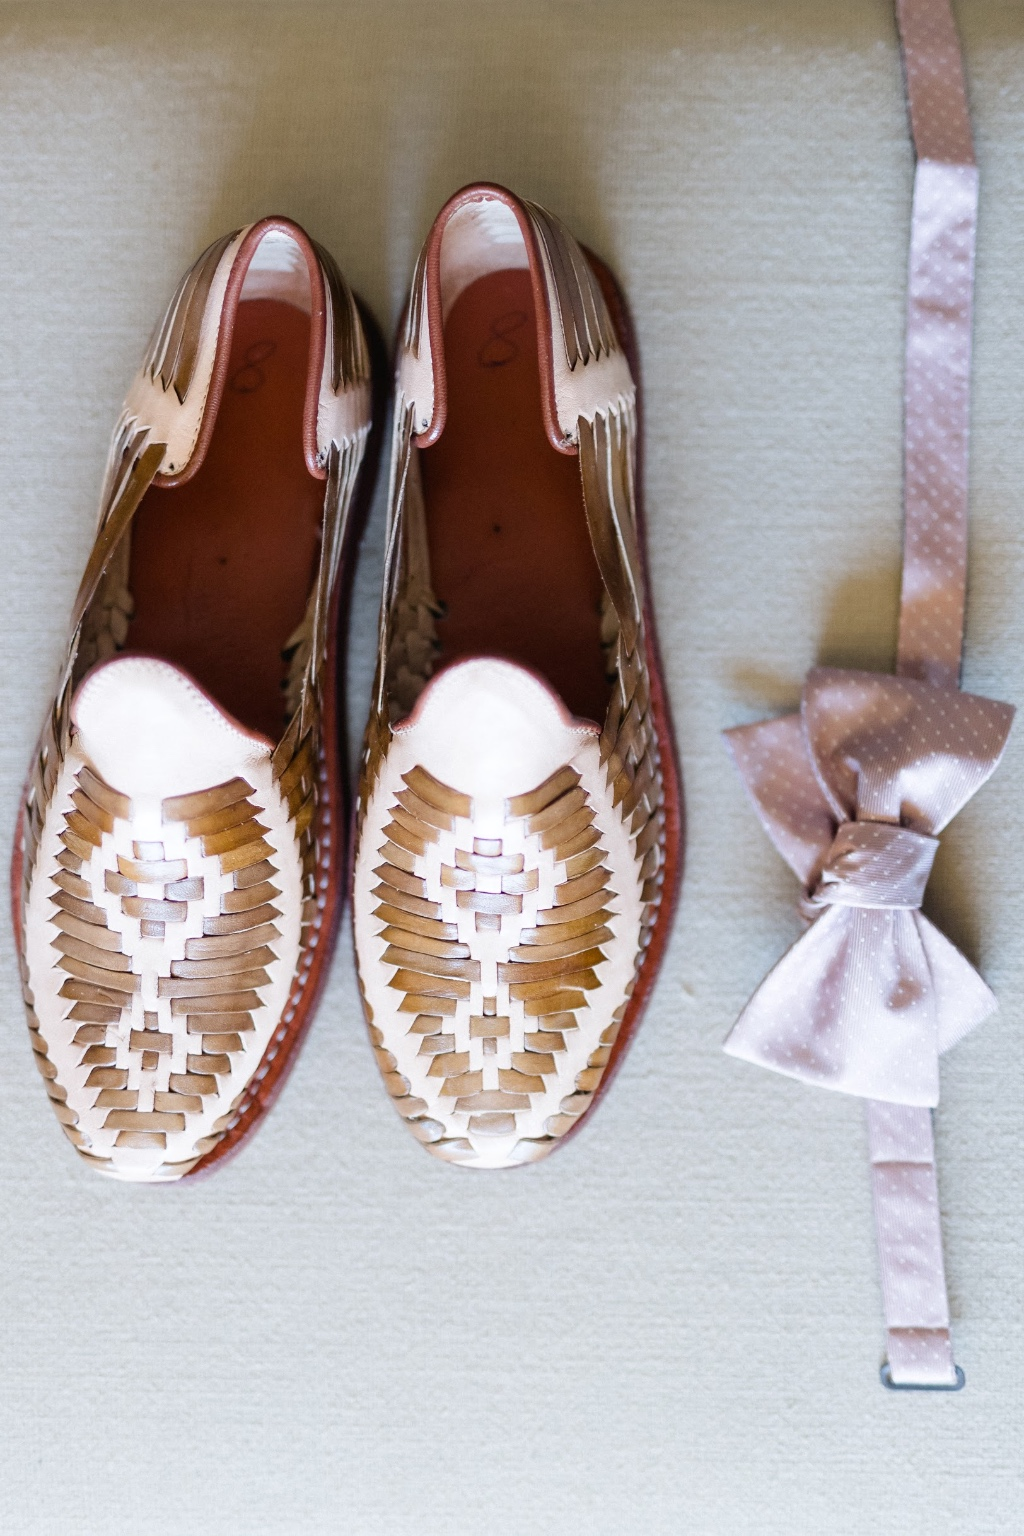 Hand-made shoes in Mexico!